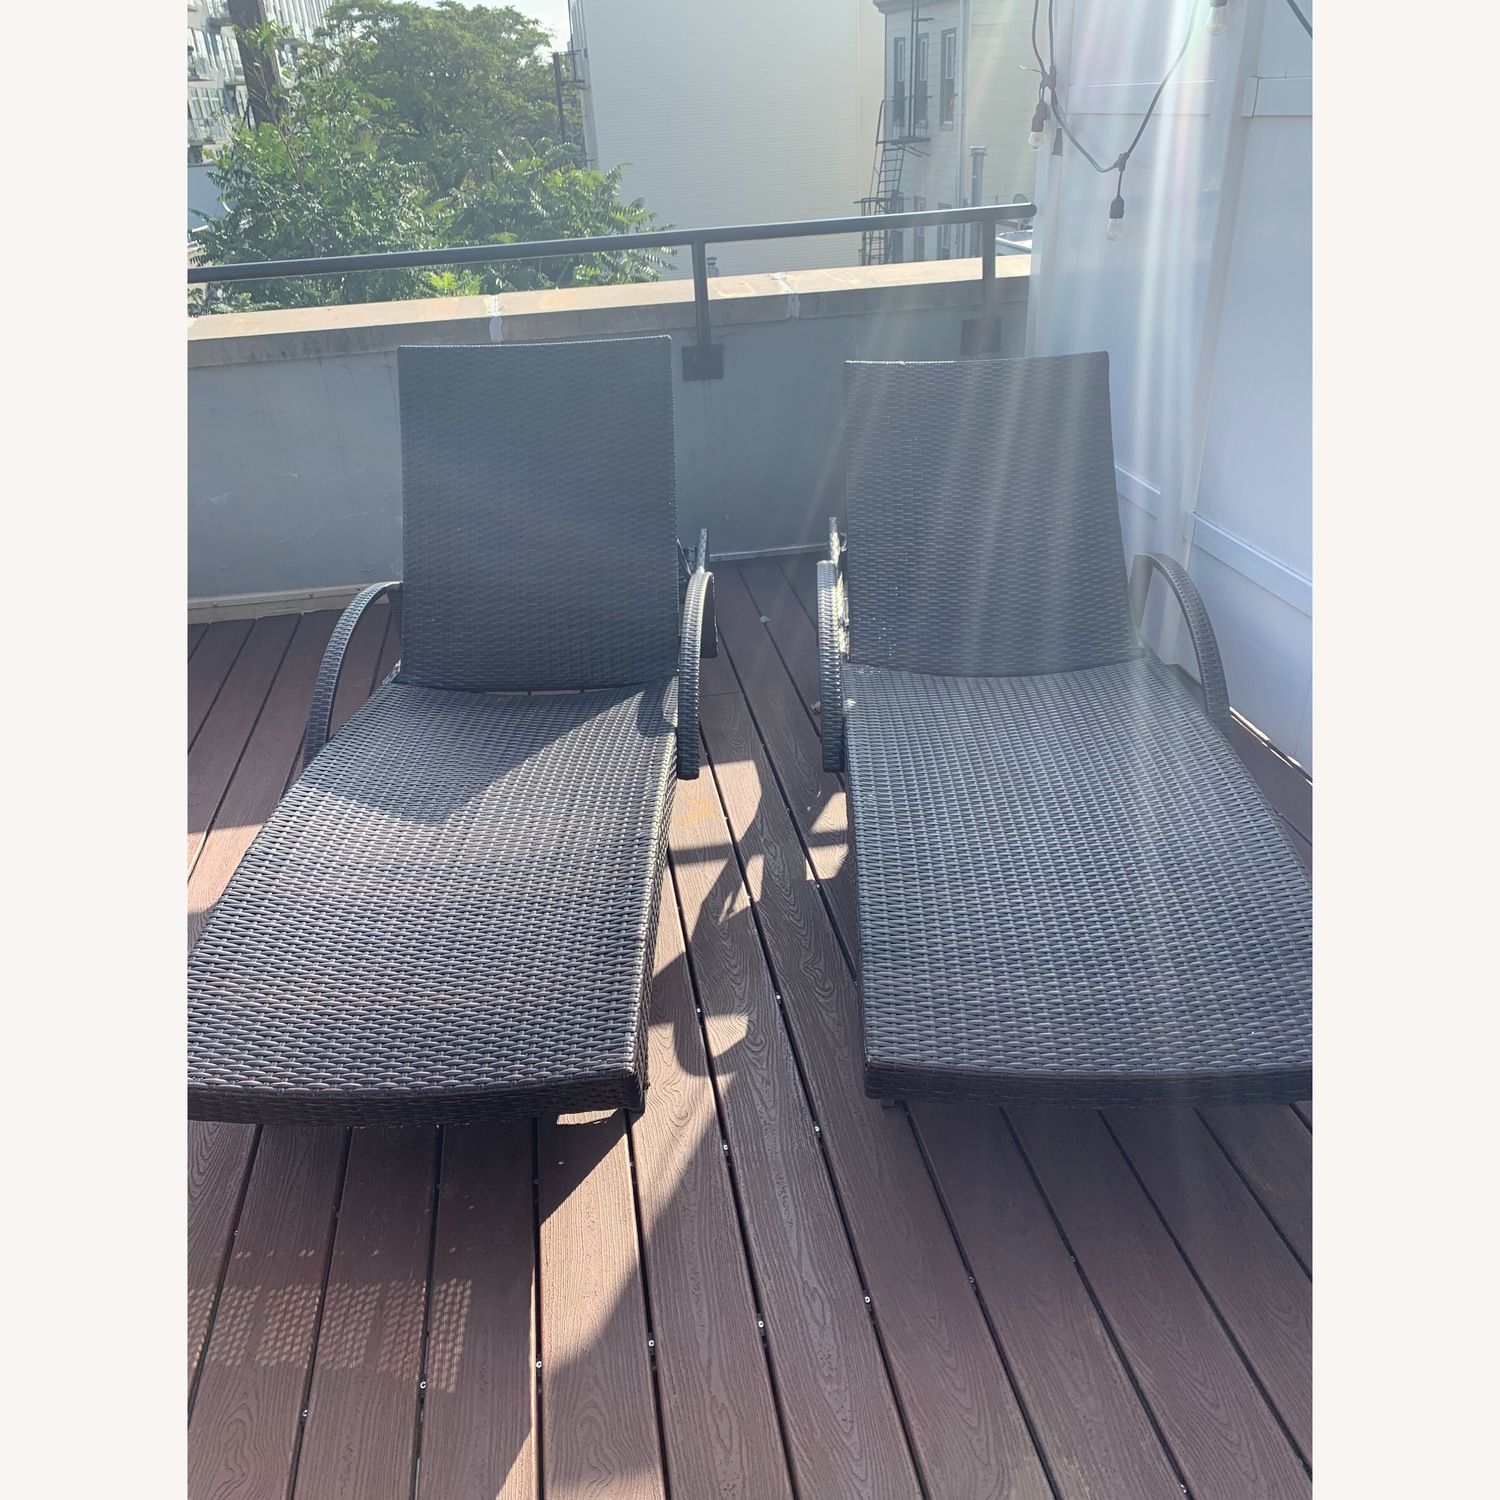 Rebello Outdoor Reclining Chaise Loungers - image-1